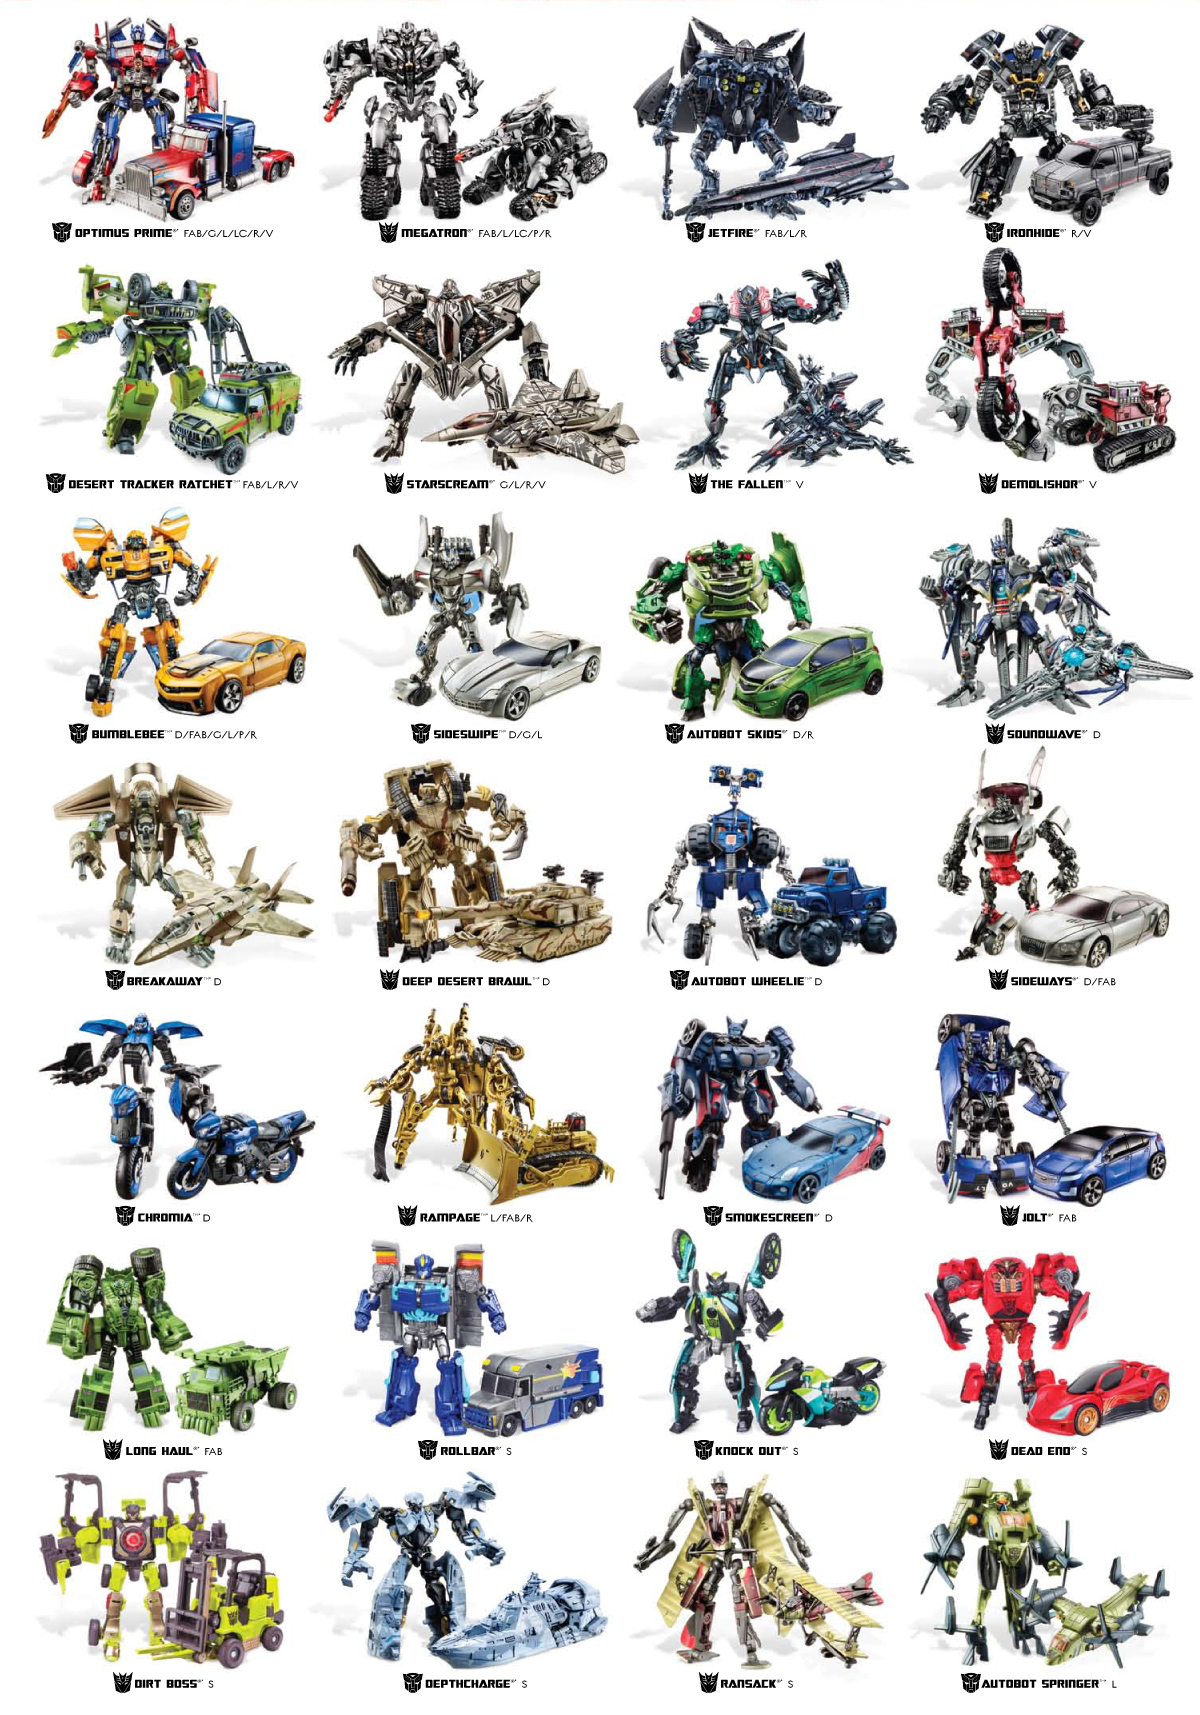 Transformers 1 characters